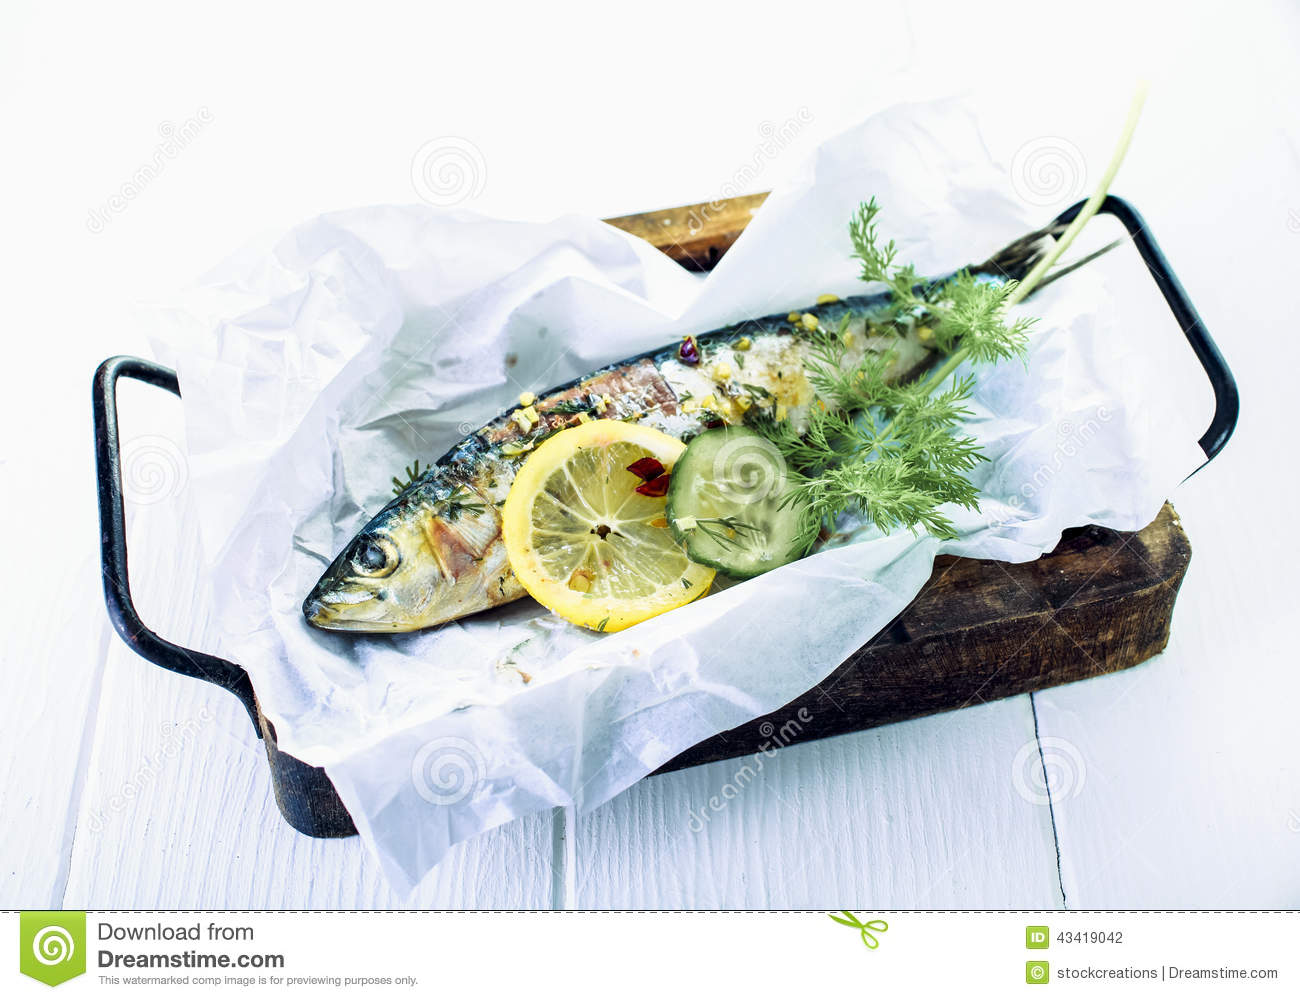 Salt-Baked Fish Stuffed With Herbs And Lemon Recipes — Dishmaps